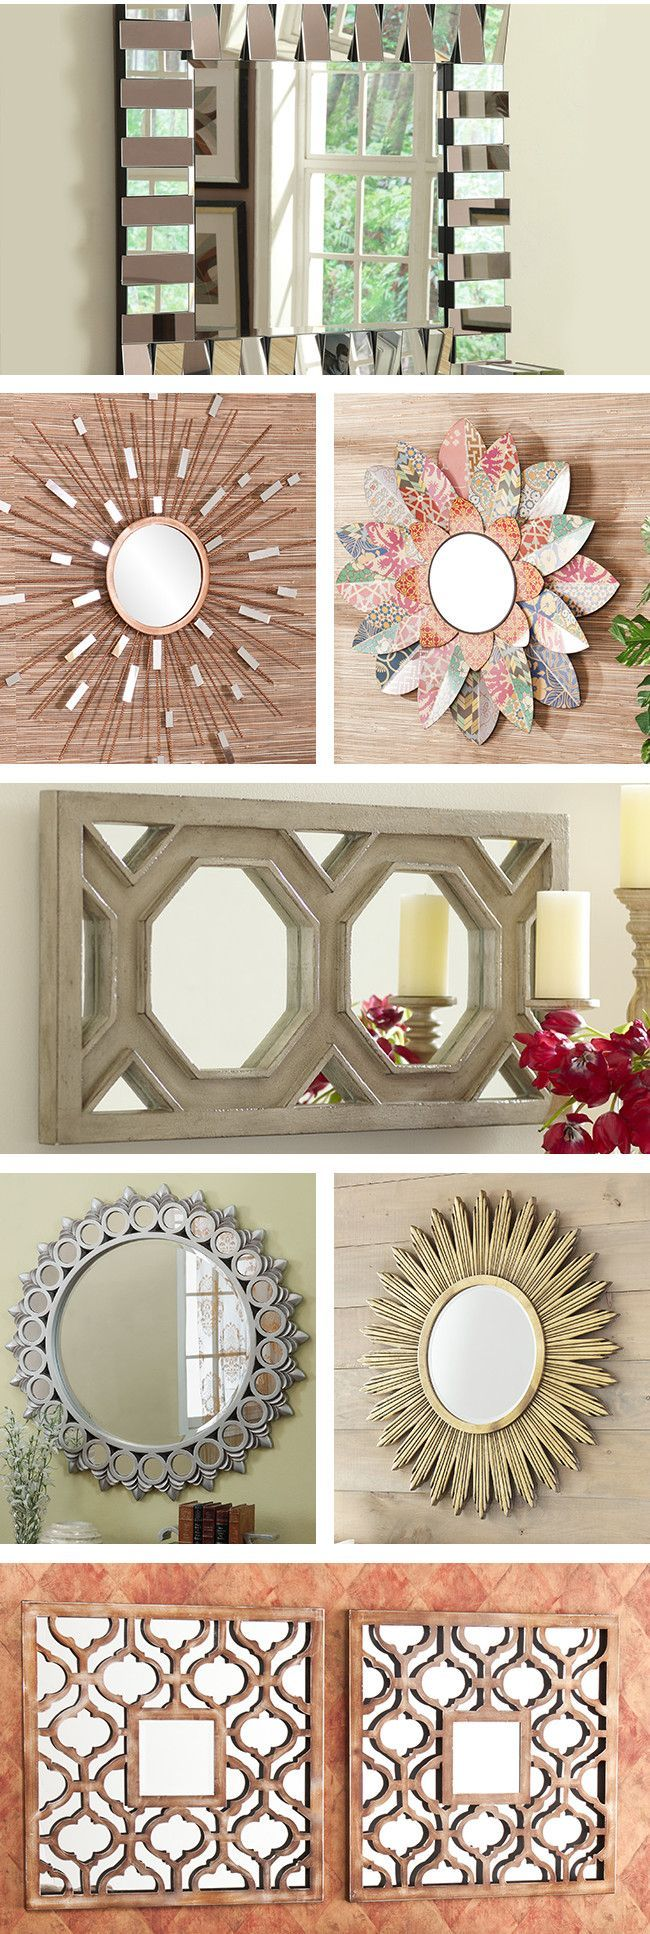 Unique Wall Unit For Drawing Room Homedecoration: Mirrors Can Help You Create A Unique Style For Your Home